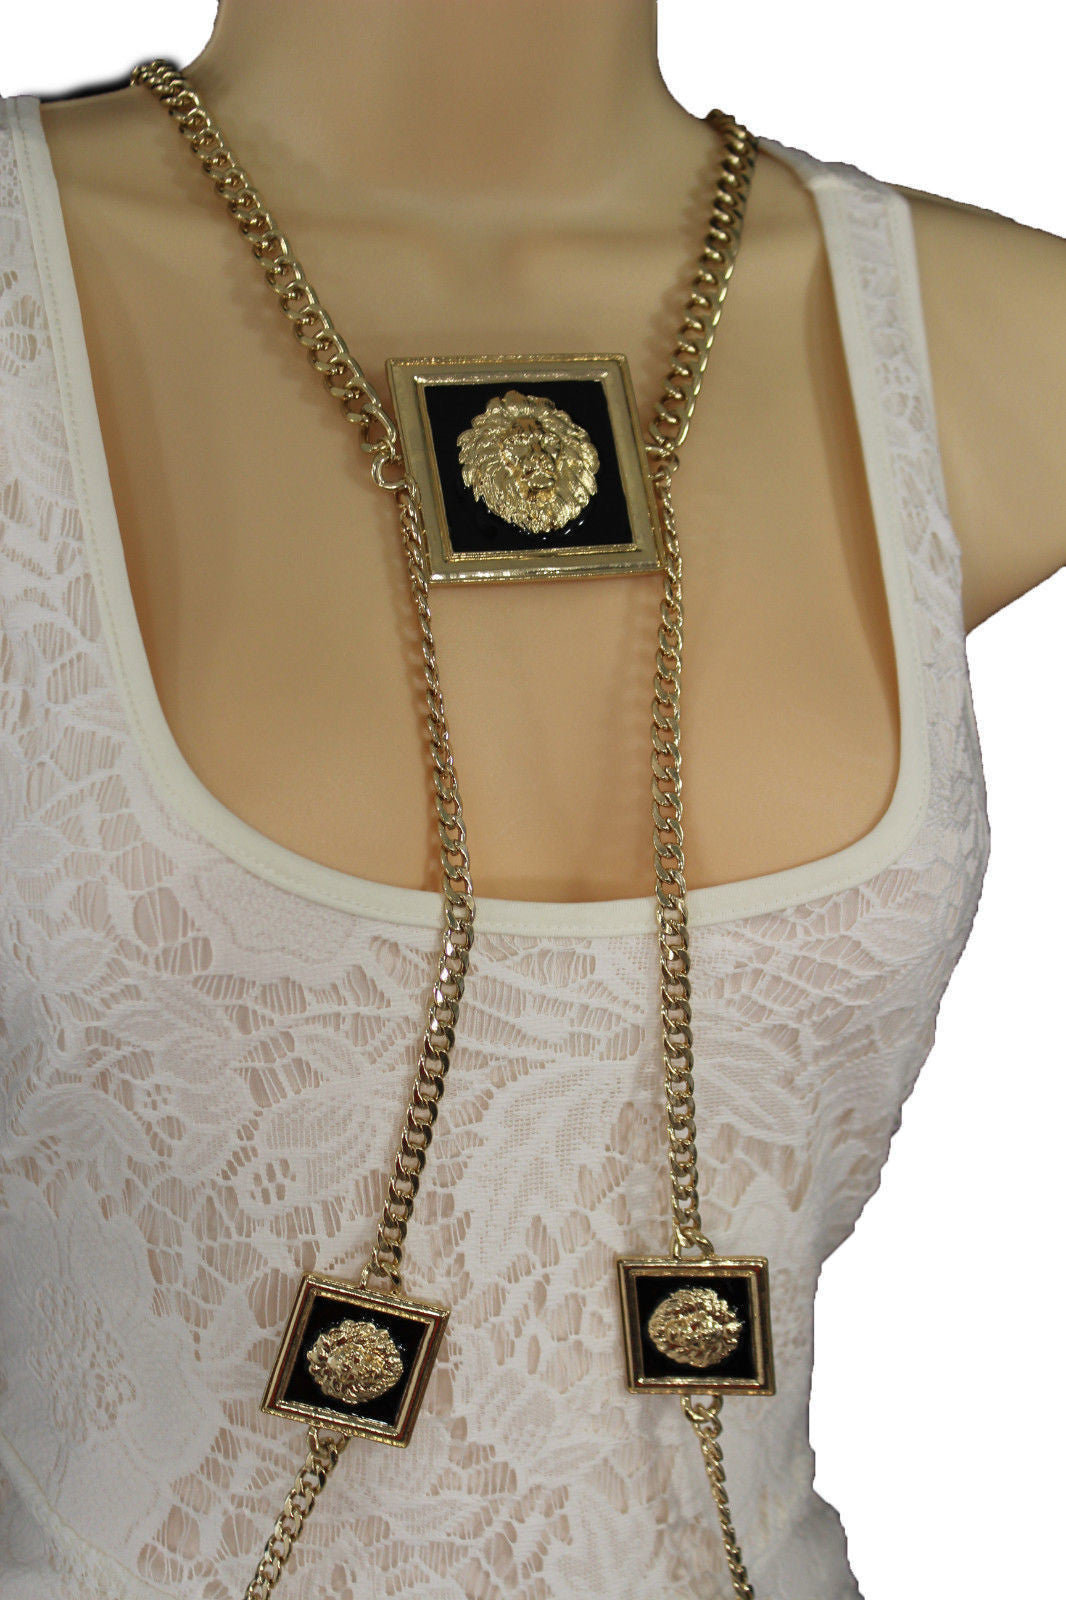 choker chain bikini crystal necklace product pendant body sexy jewelry rhinestone gem harness